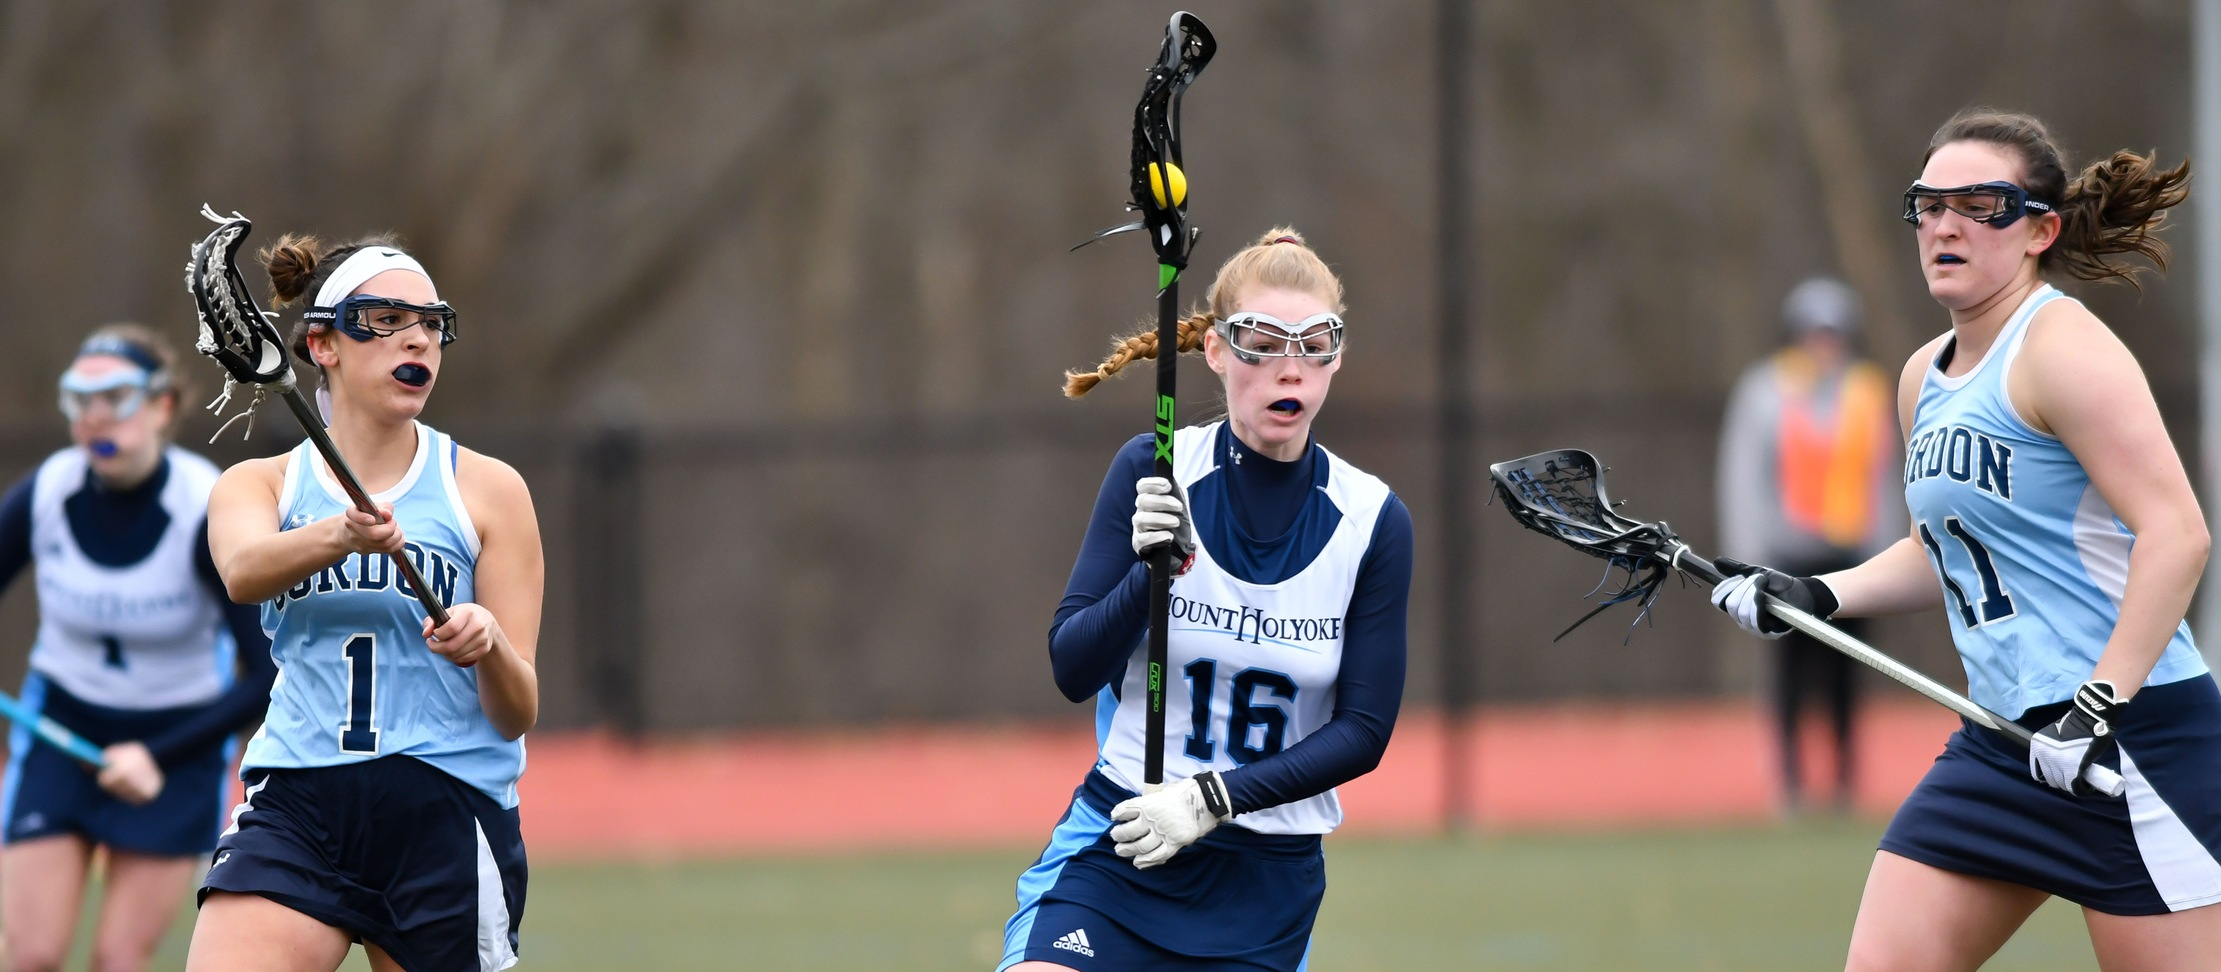 Action photo of lacrosse junior Haley Subocz.